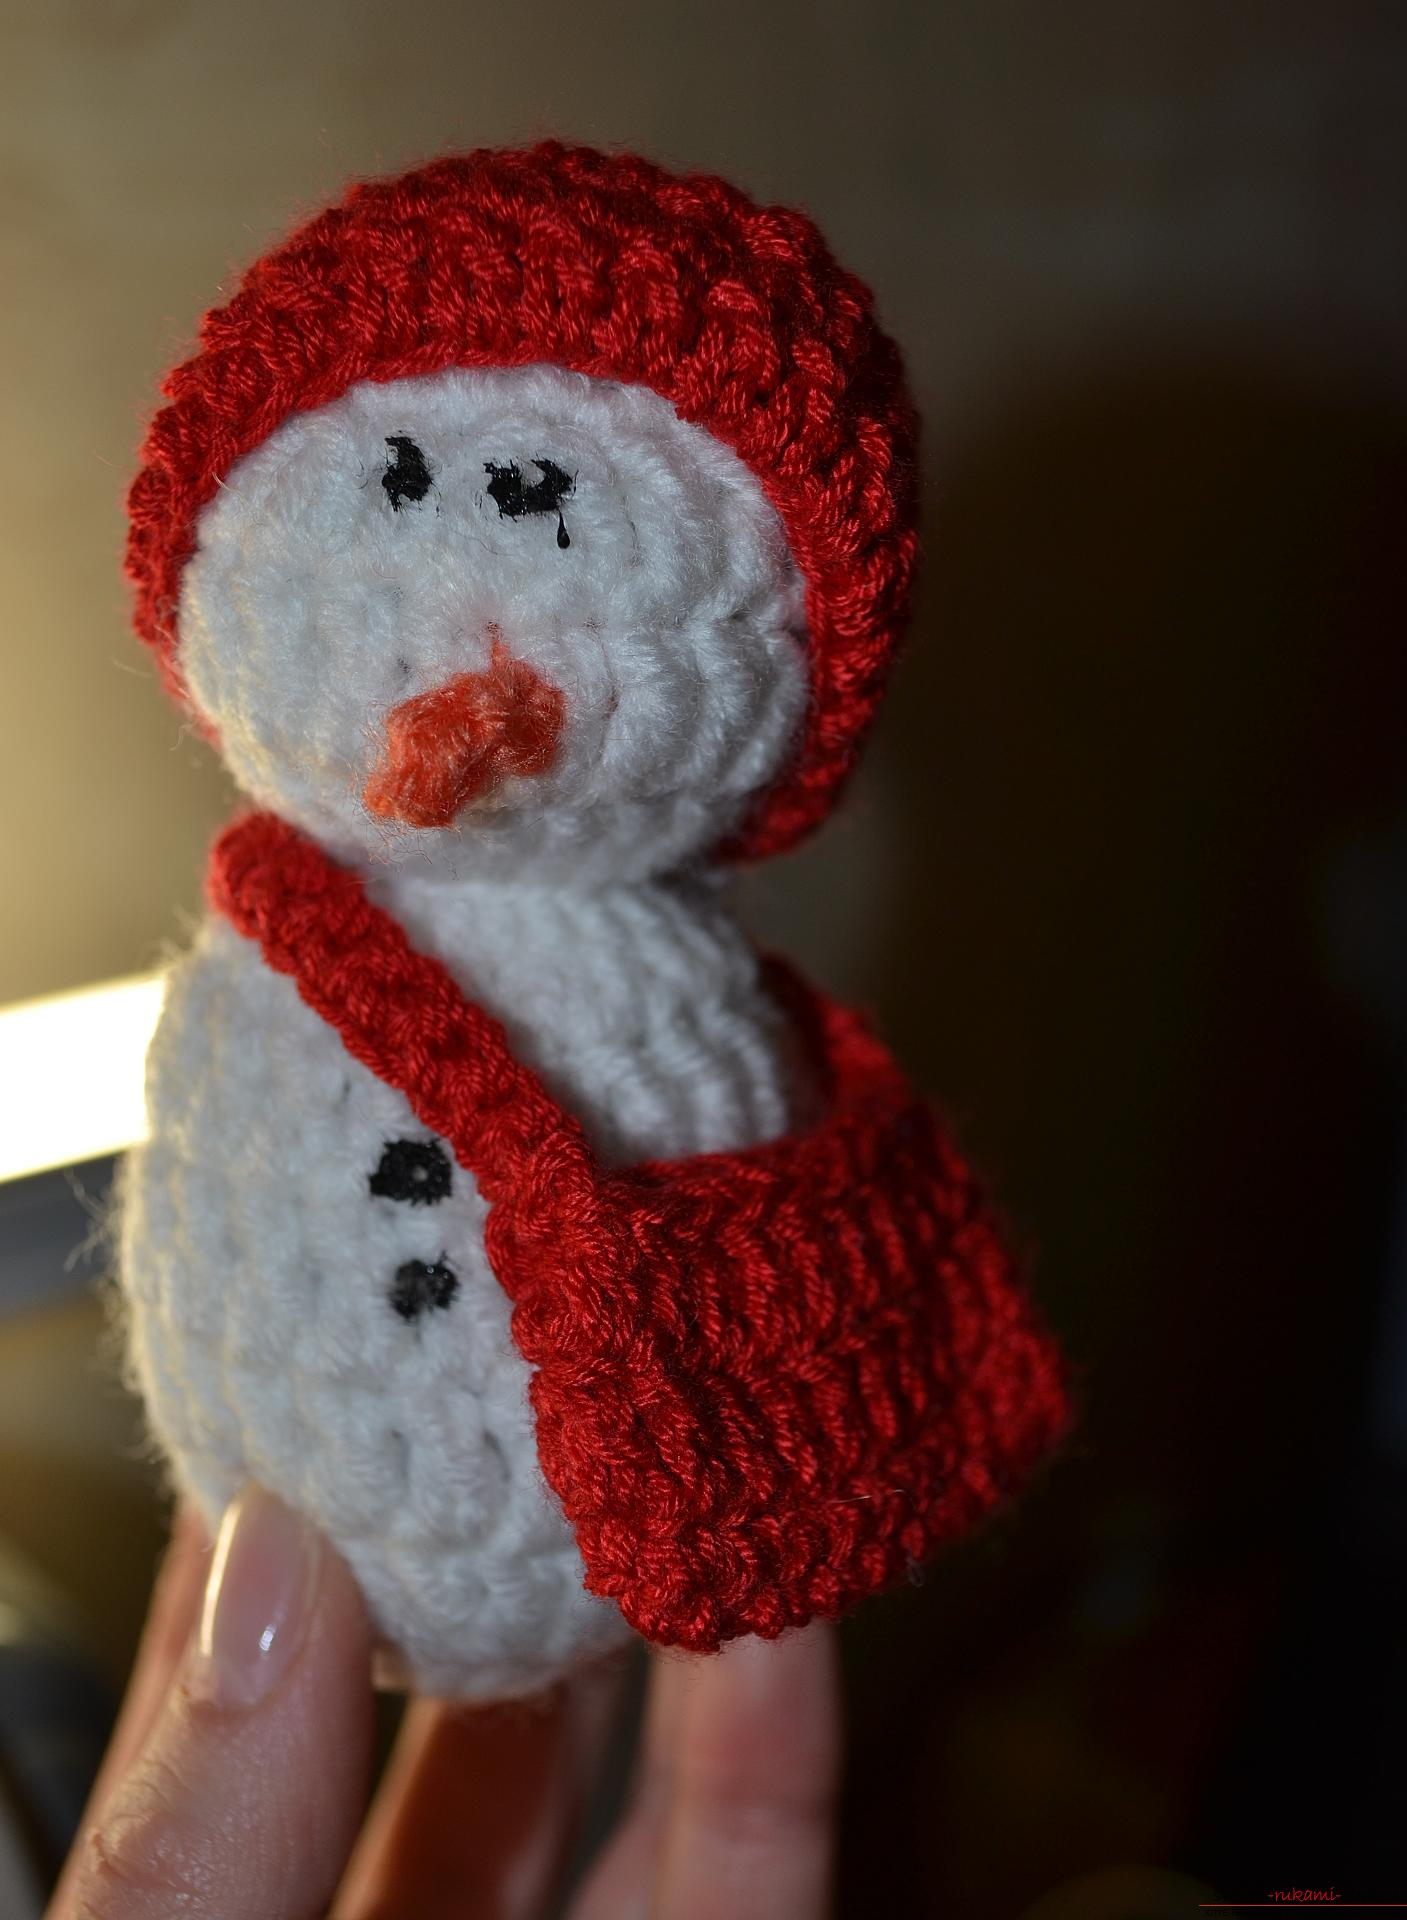 A master class with a photo and description will teach the crocheting of a snowman, which will be understandable for beginners. Photo №8